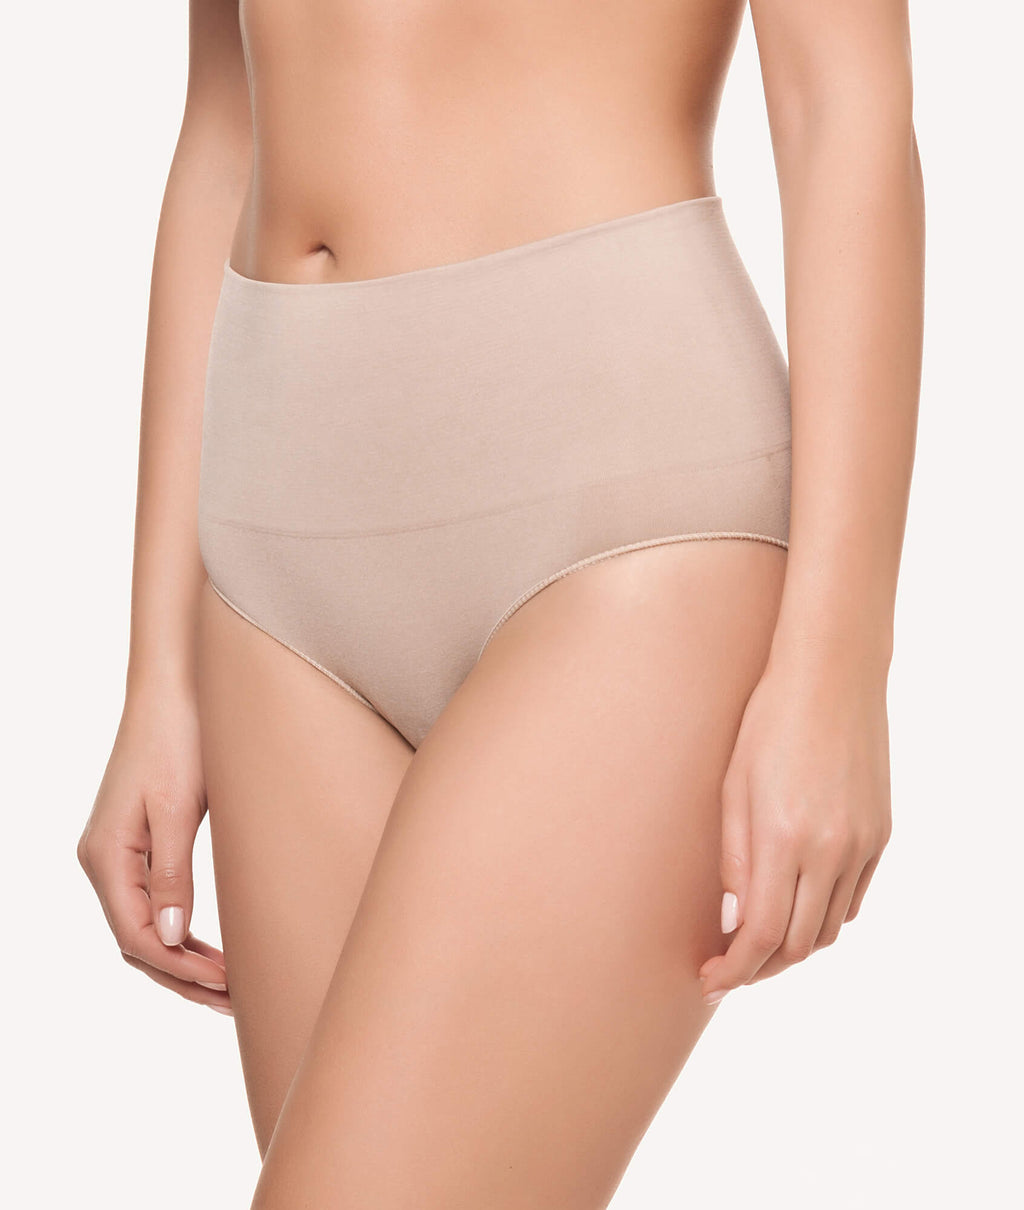 Braga faja baja reafirmante doble capa beige lateral - CHANNO Woman